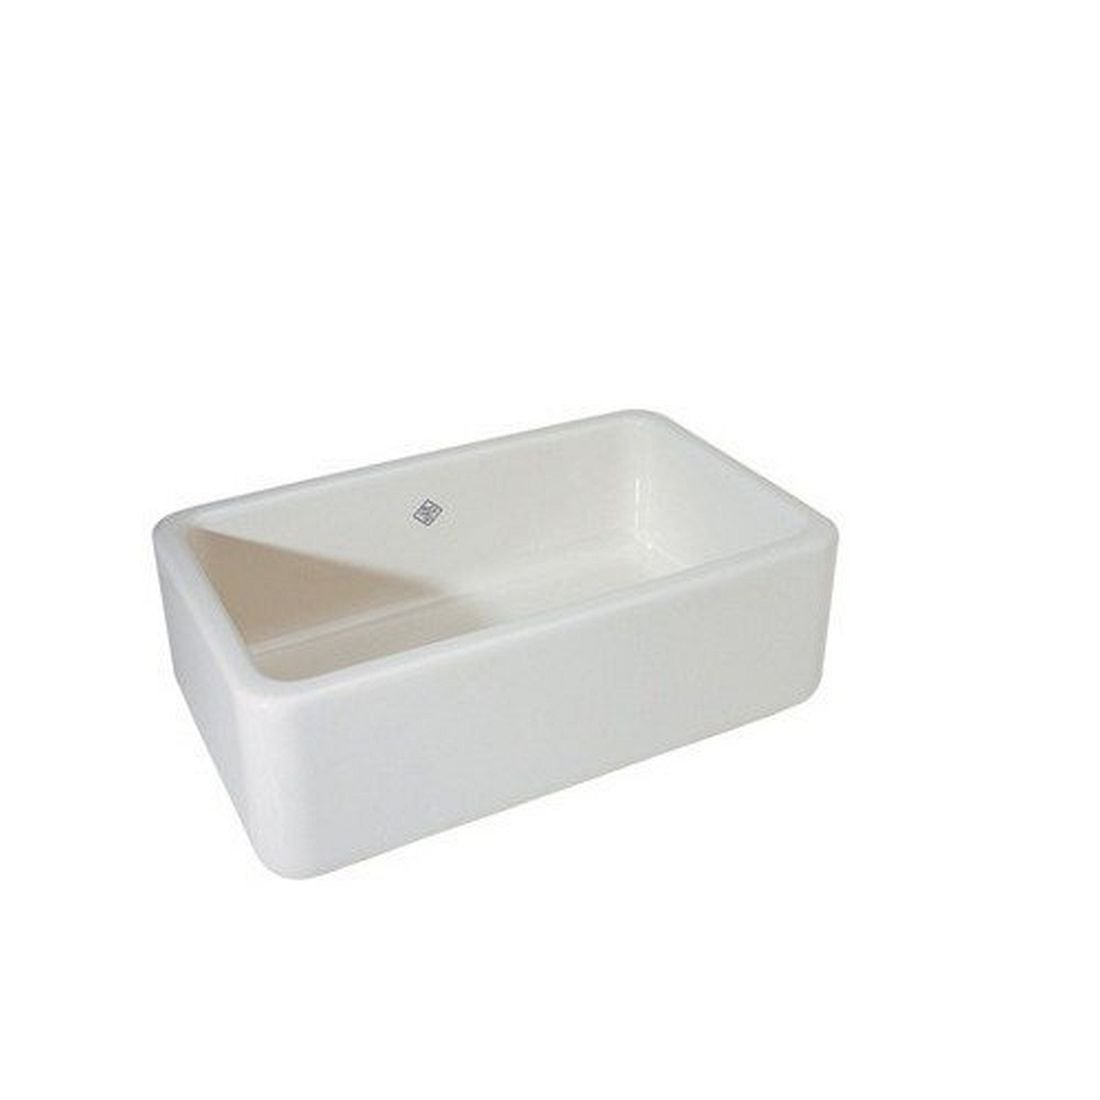 Rohl RC3018WH 30 Inch By 18 Inch By 10 Inch Shaws Lancaster Apron Front  Single Bowl Fireclay Kitchen Sink, White   Farmhouse Kitchen Sink    Amazon.com